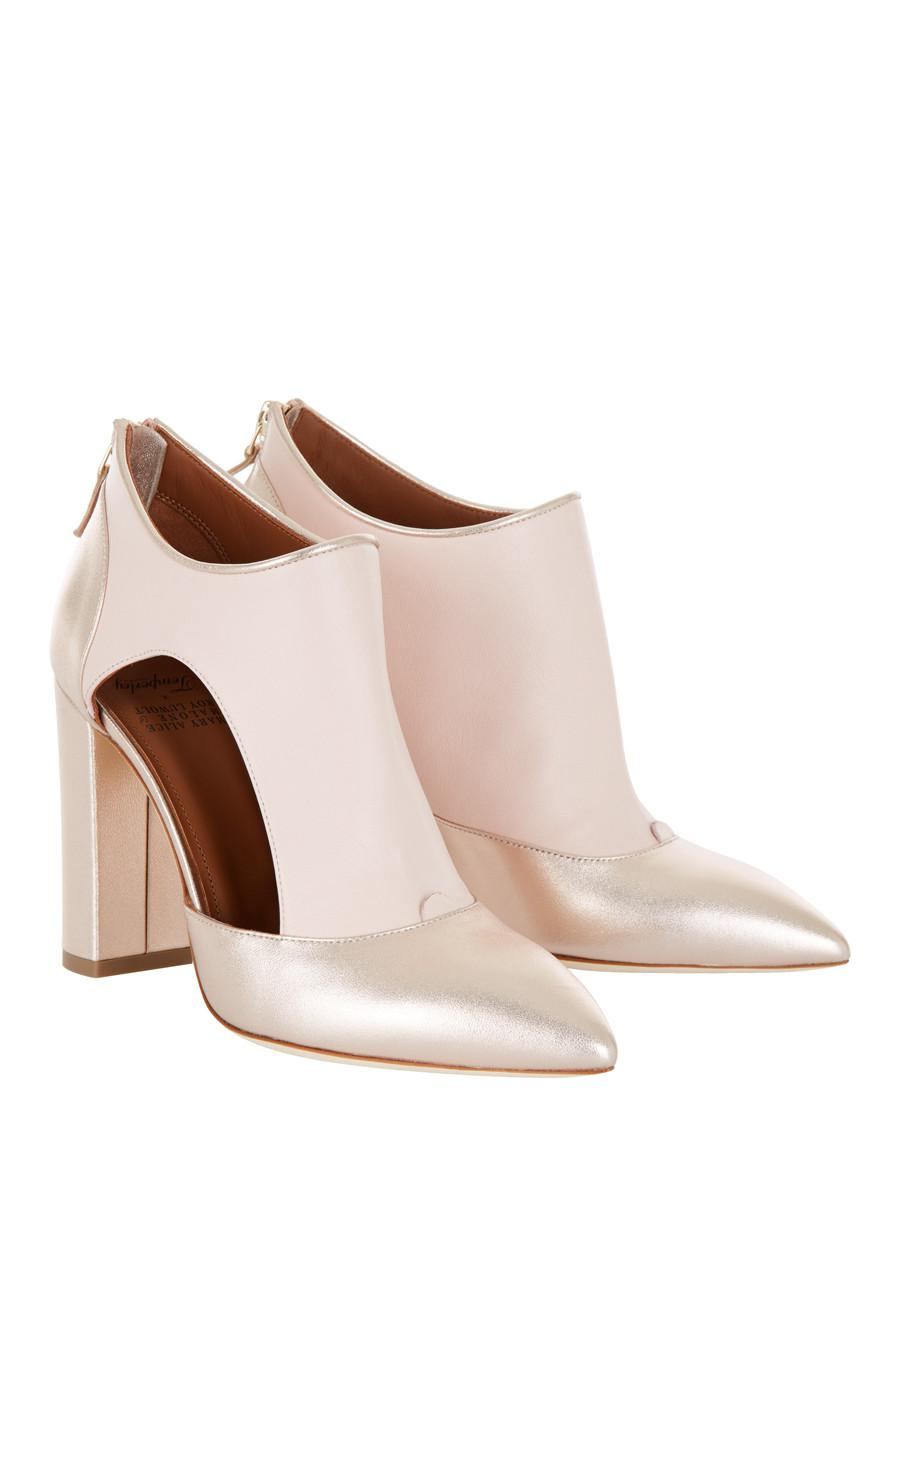 Temperley London Leather Elaine Boot in Nude (Natural)